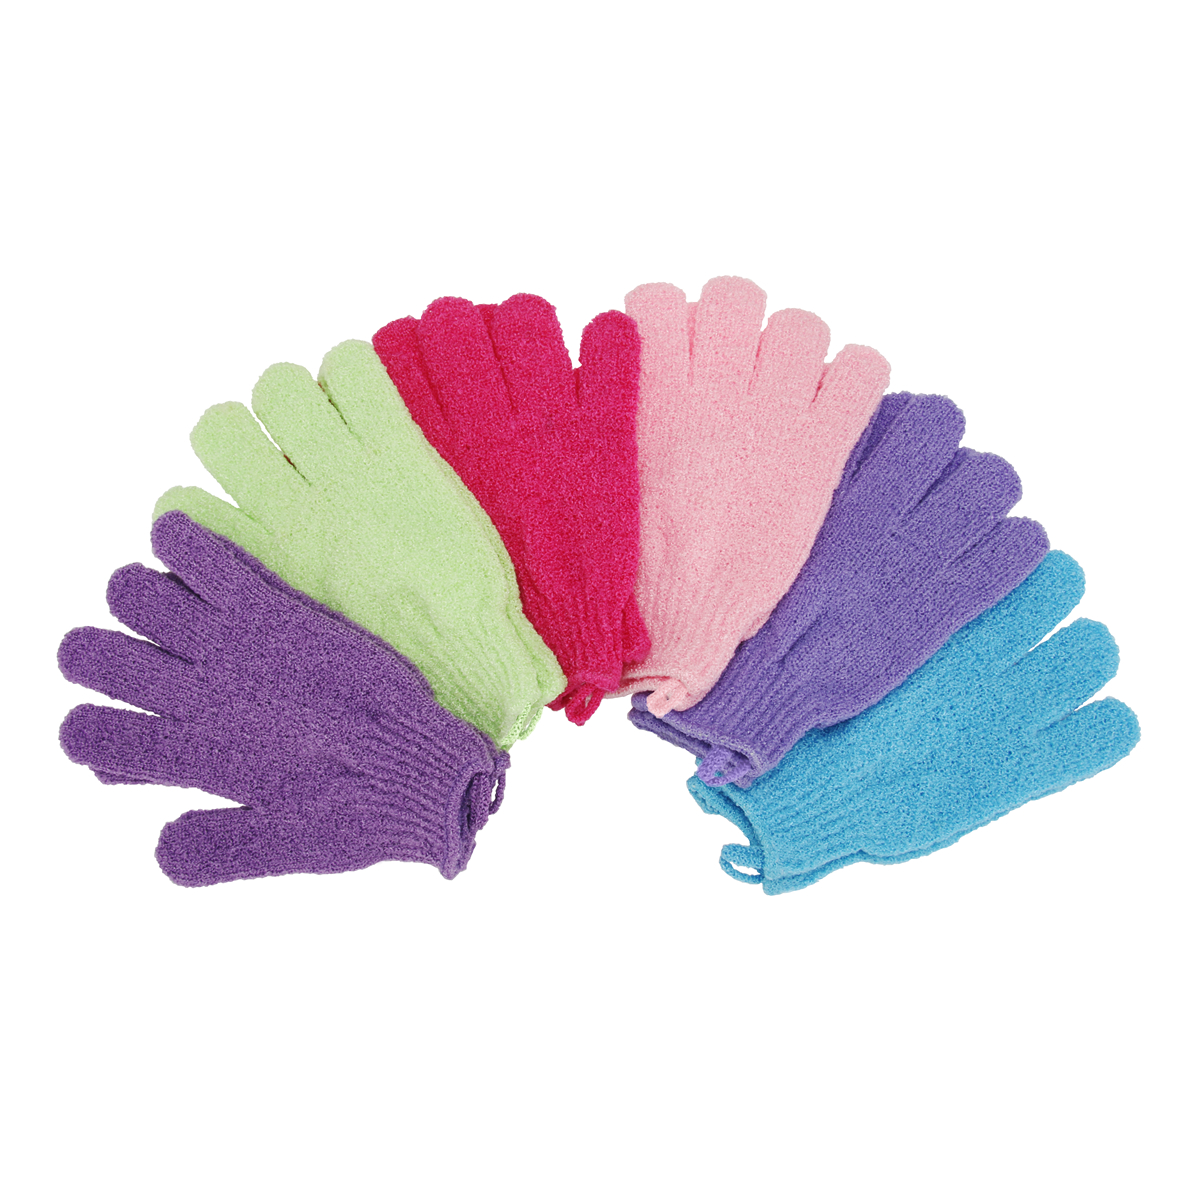 6 Pair Exfoliating Shower Bath Glove Scrubber Shower Dead Skin Cell Remover Body Spa Massage Gloves (Dark Purple + Light Blue + Hot Pink + Green + Light Purple + Pink)